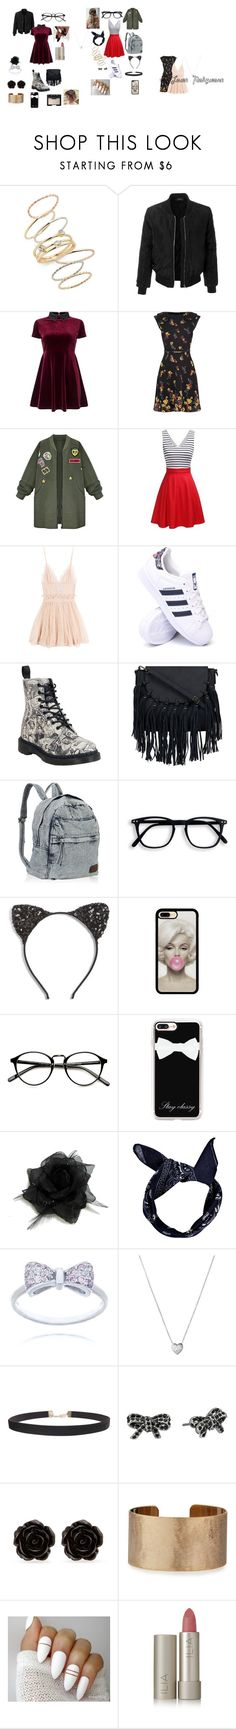 """best friends / polar opposites"" by unicornlovewilson on Polyvore featuring BP., LE3NO, Miss Selfridge, WithChic, Alexander McQueen, adidas, Dr. Martens, Cara, Casetify and Boohoo"